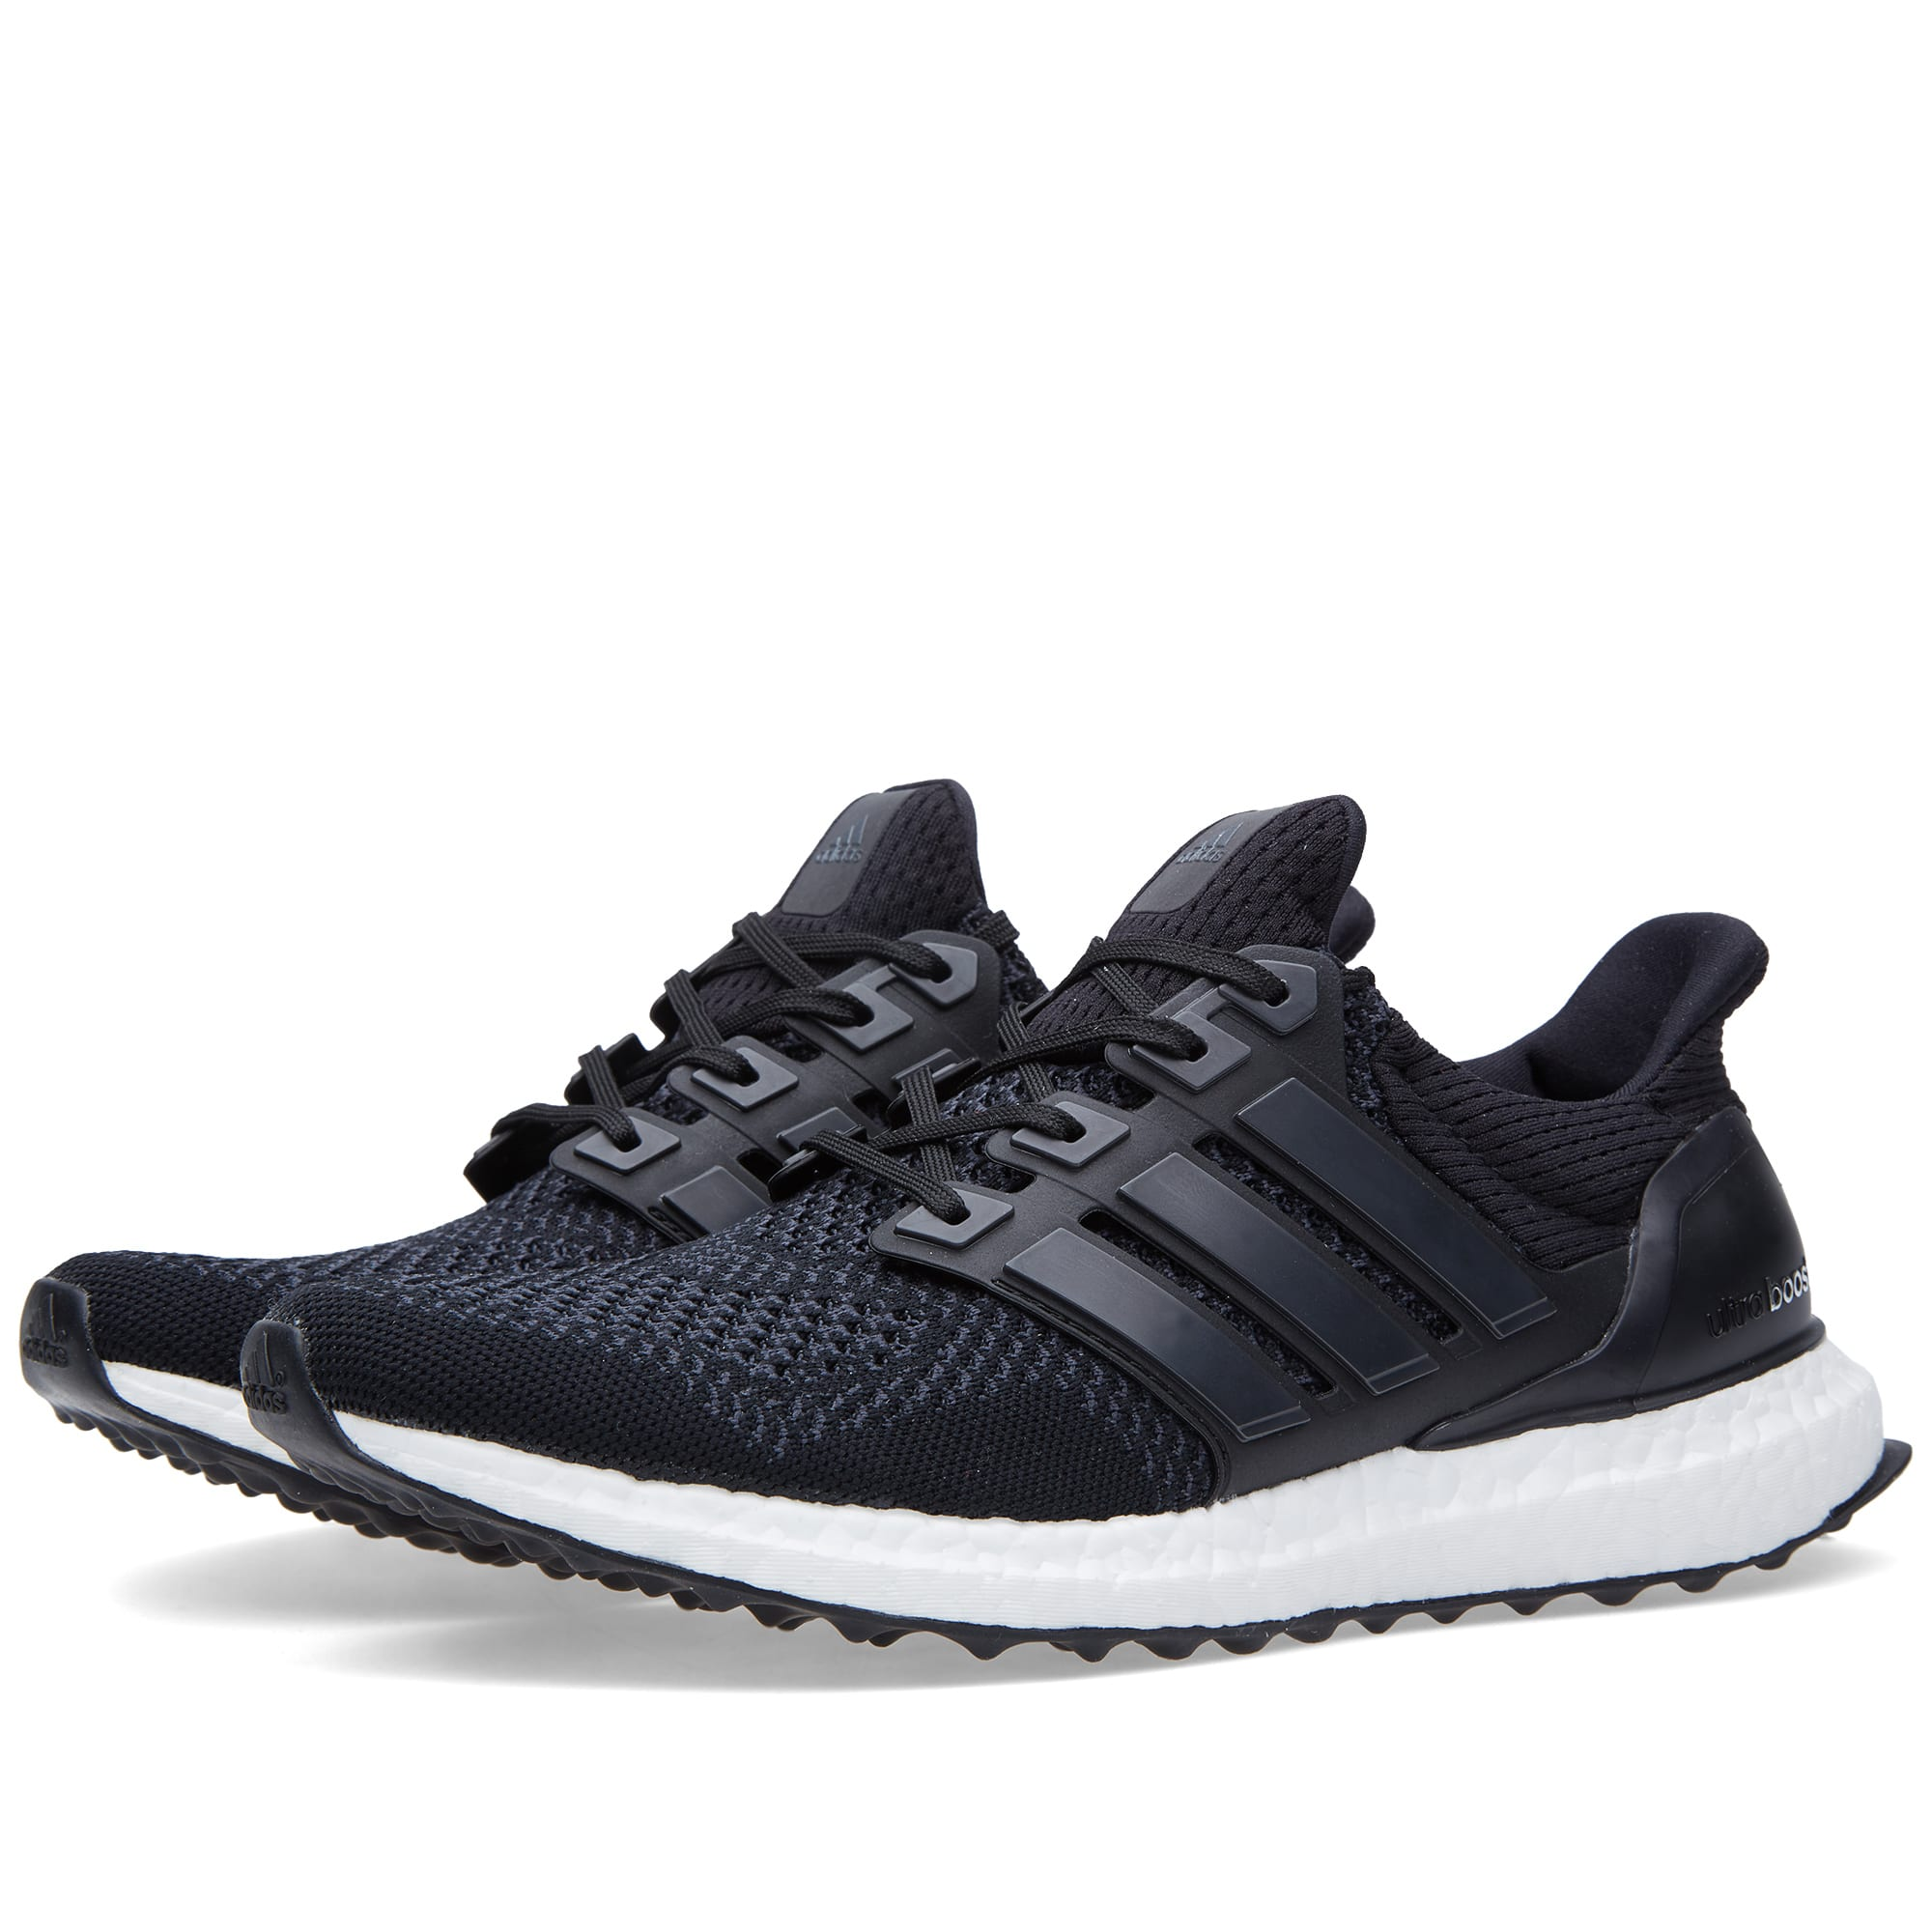 pretty nice 0ad4b e3997 Adidas Ultra Boost M Core Black   White   END.